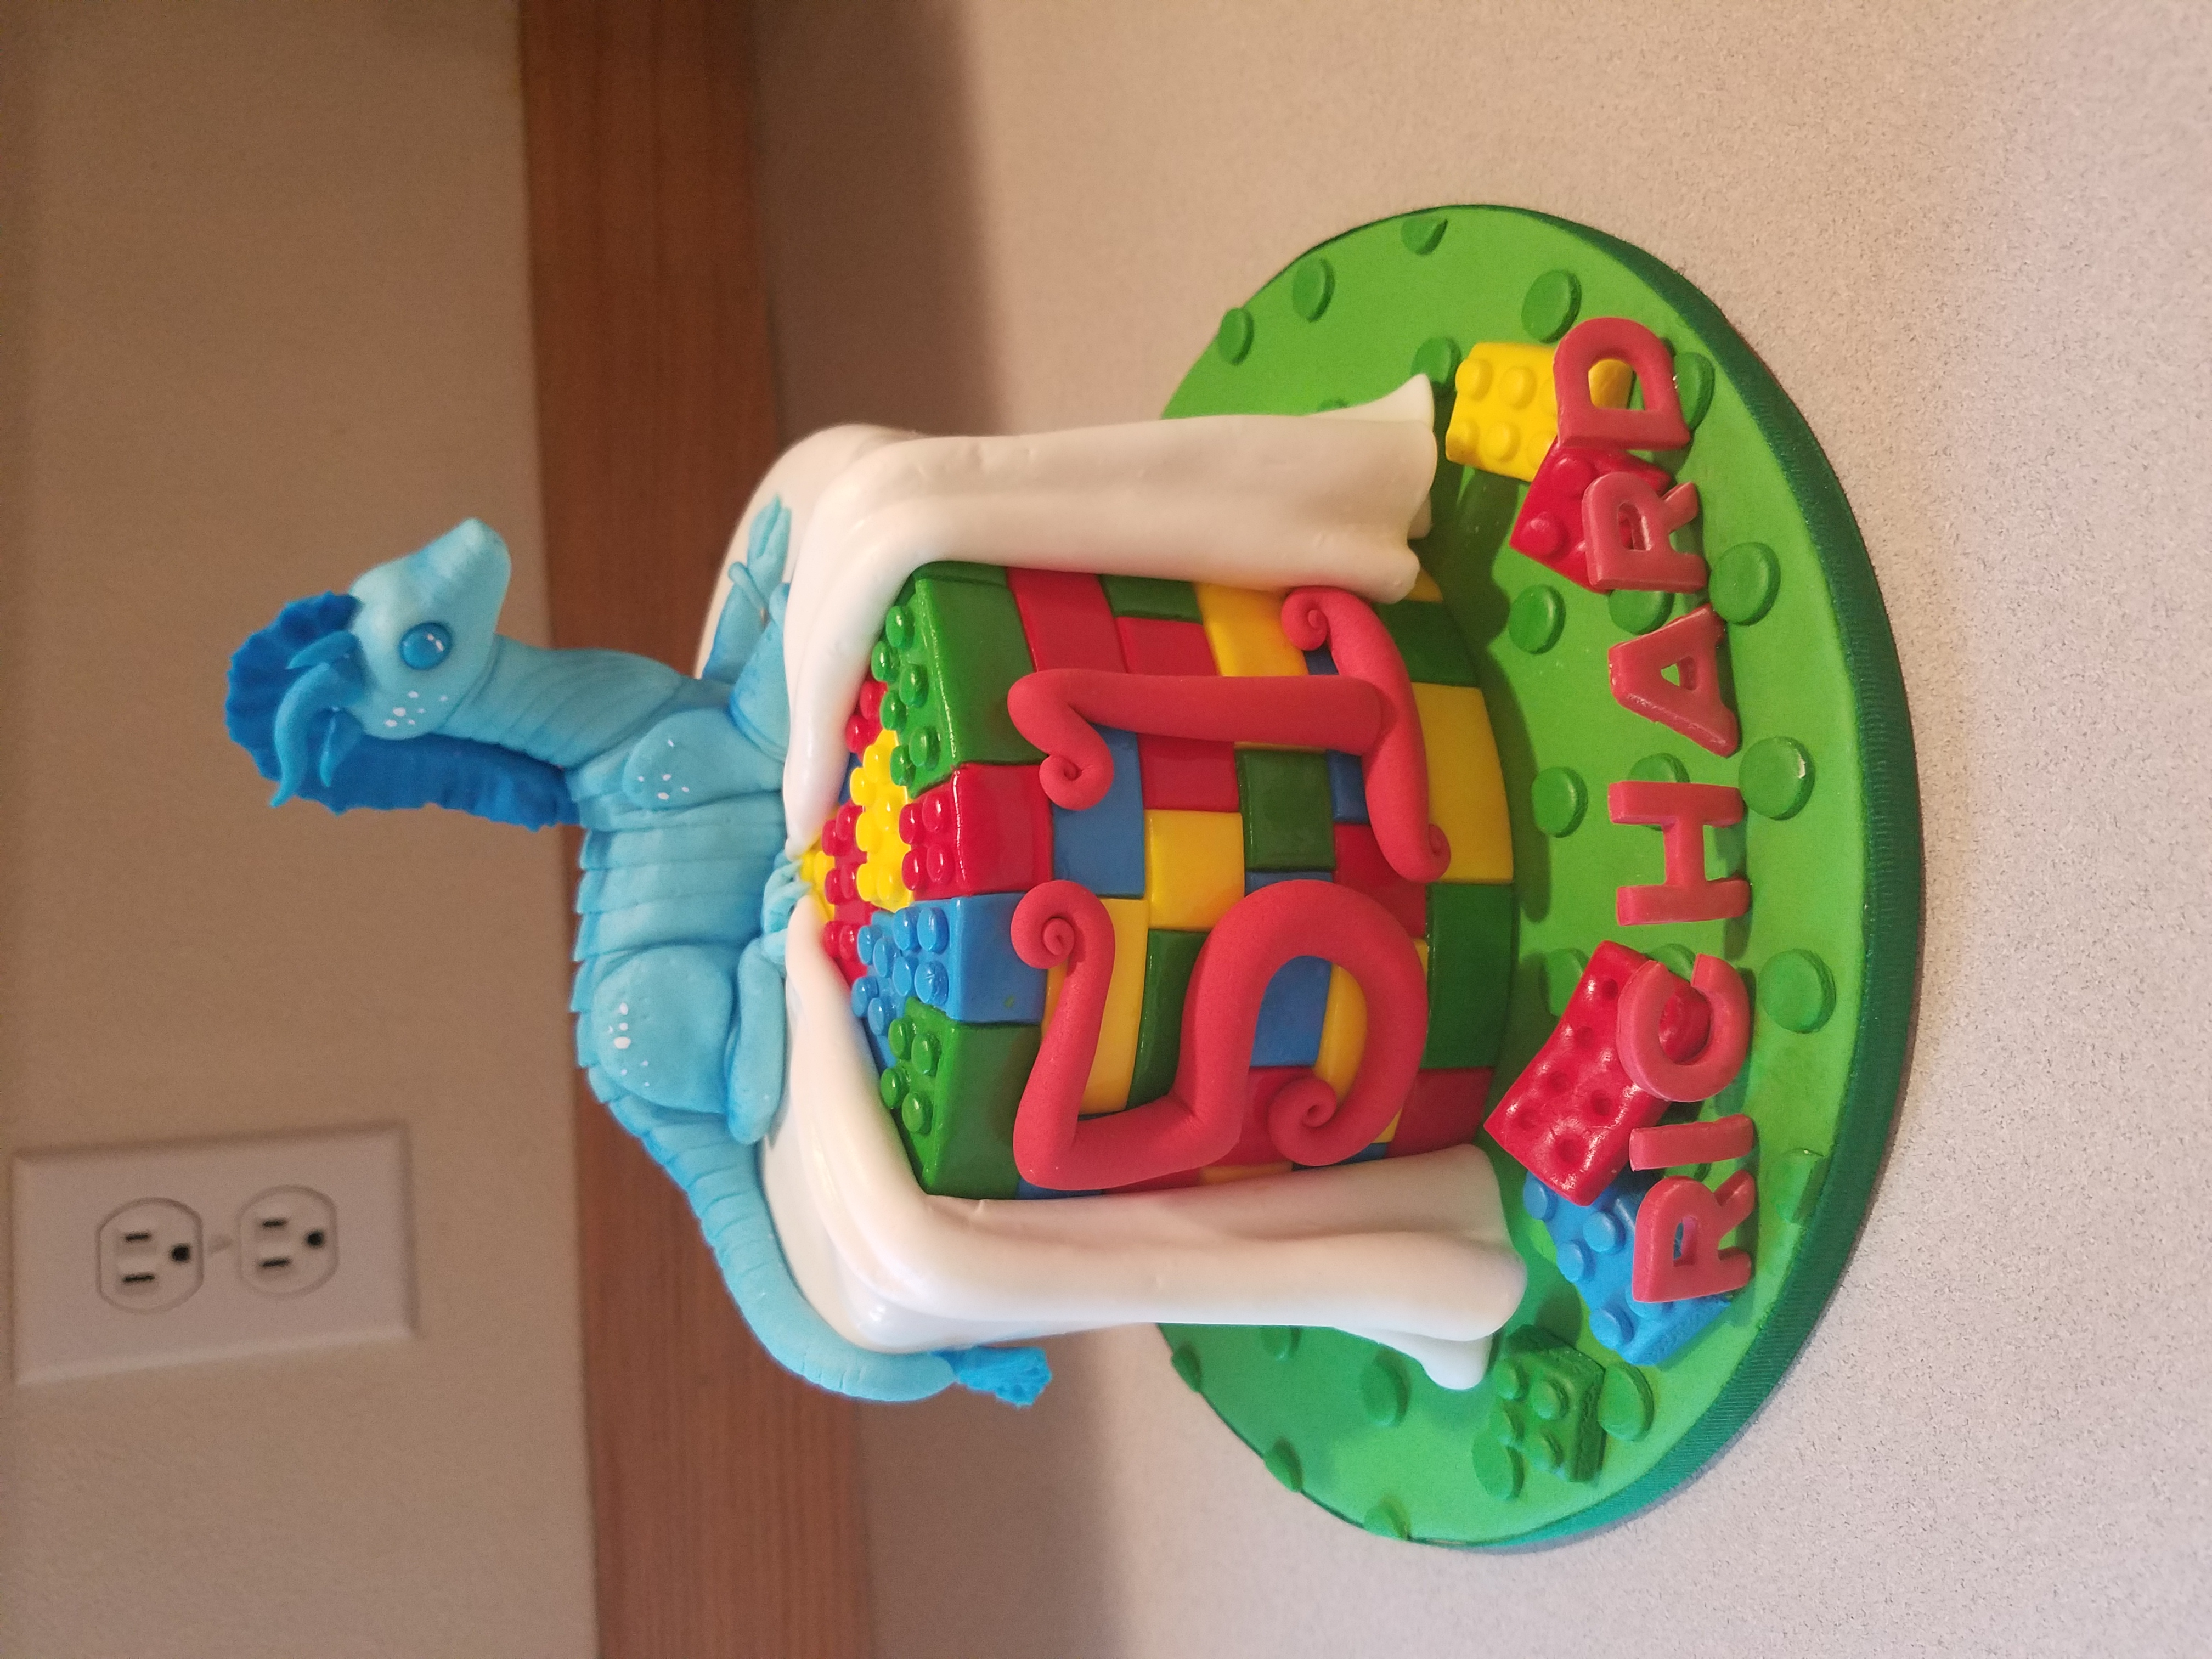 Toy dragon w/lego's cake